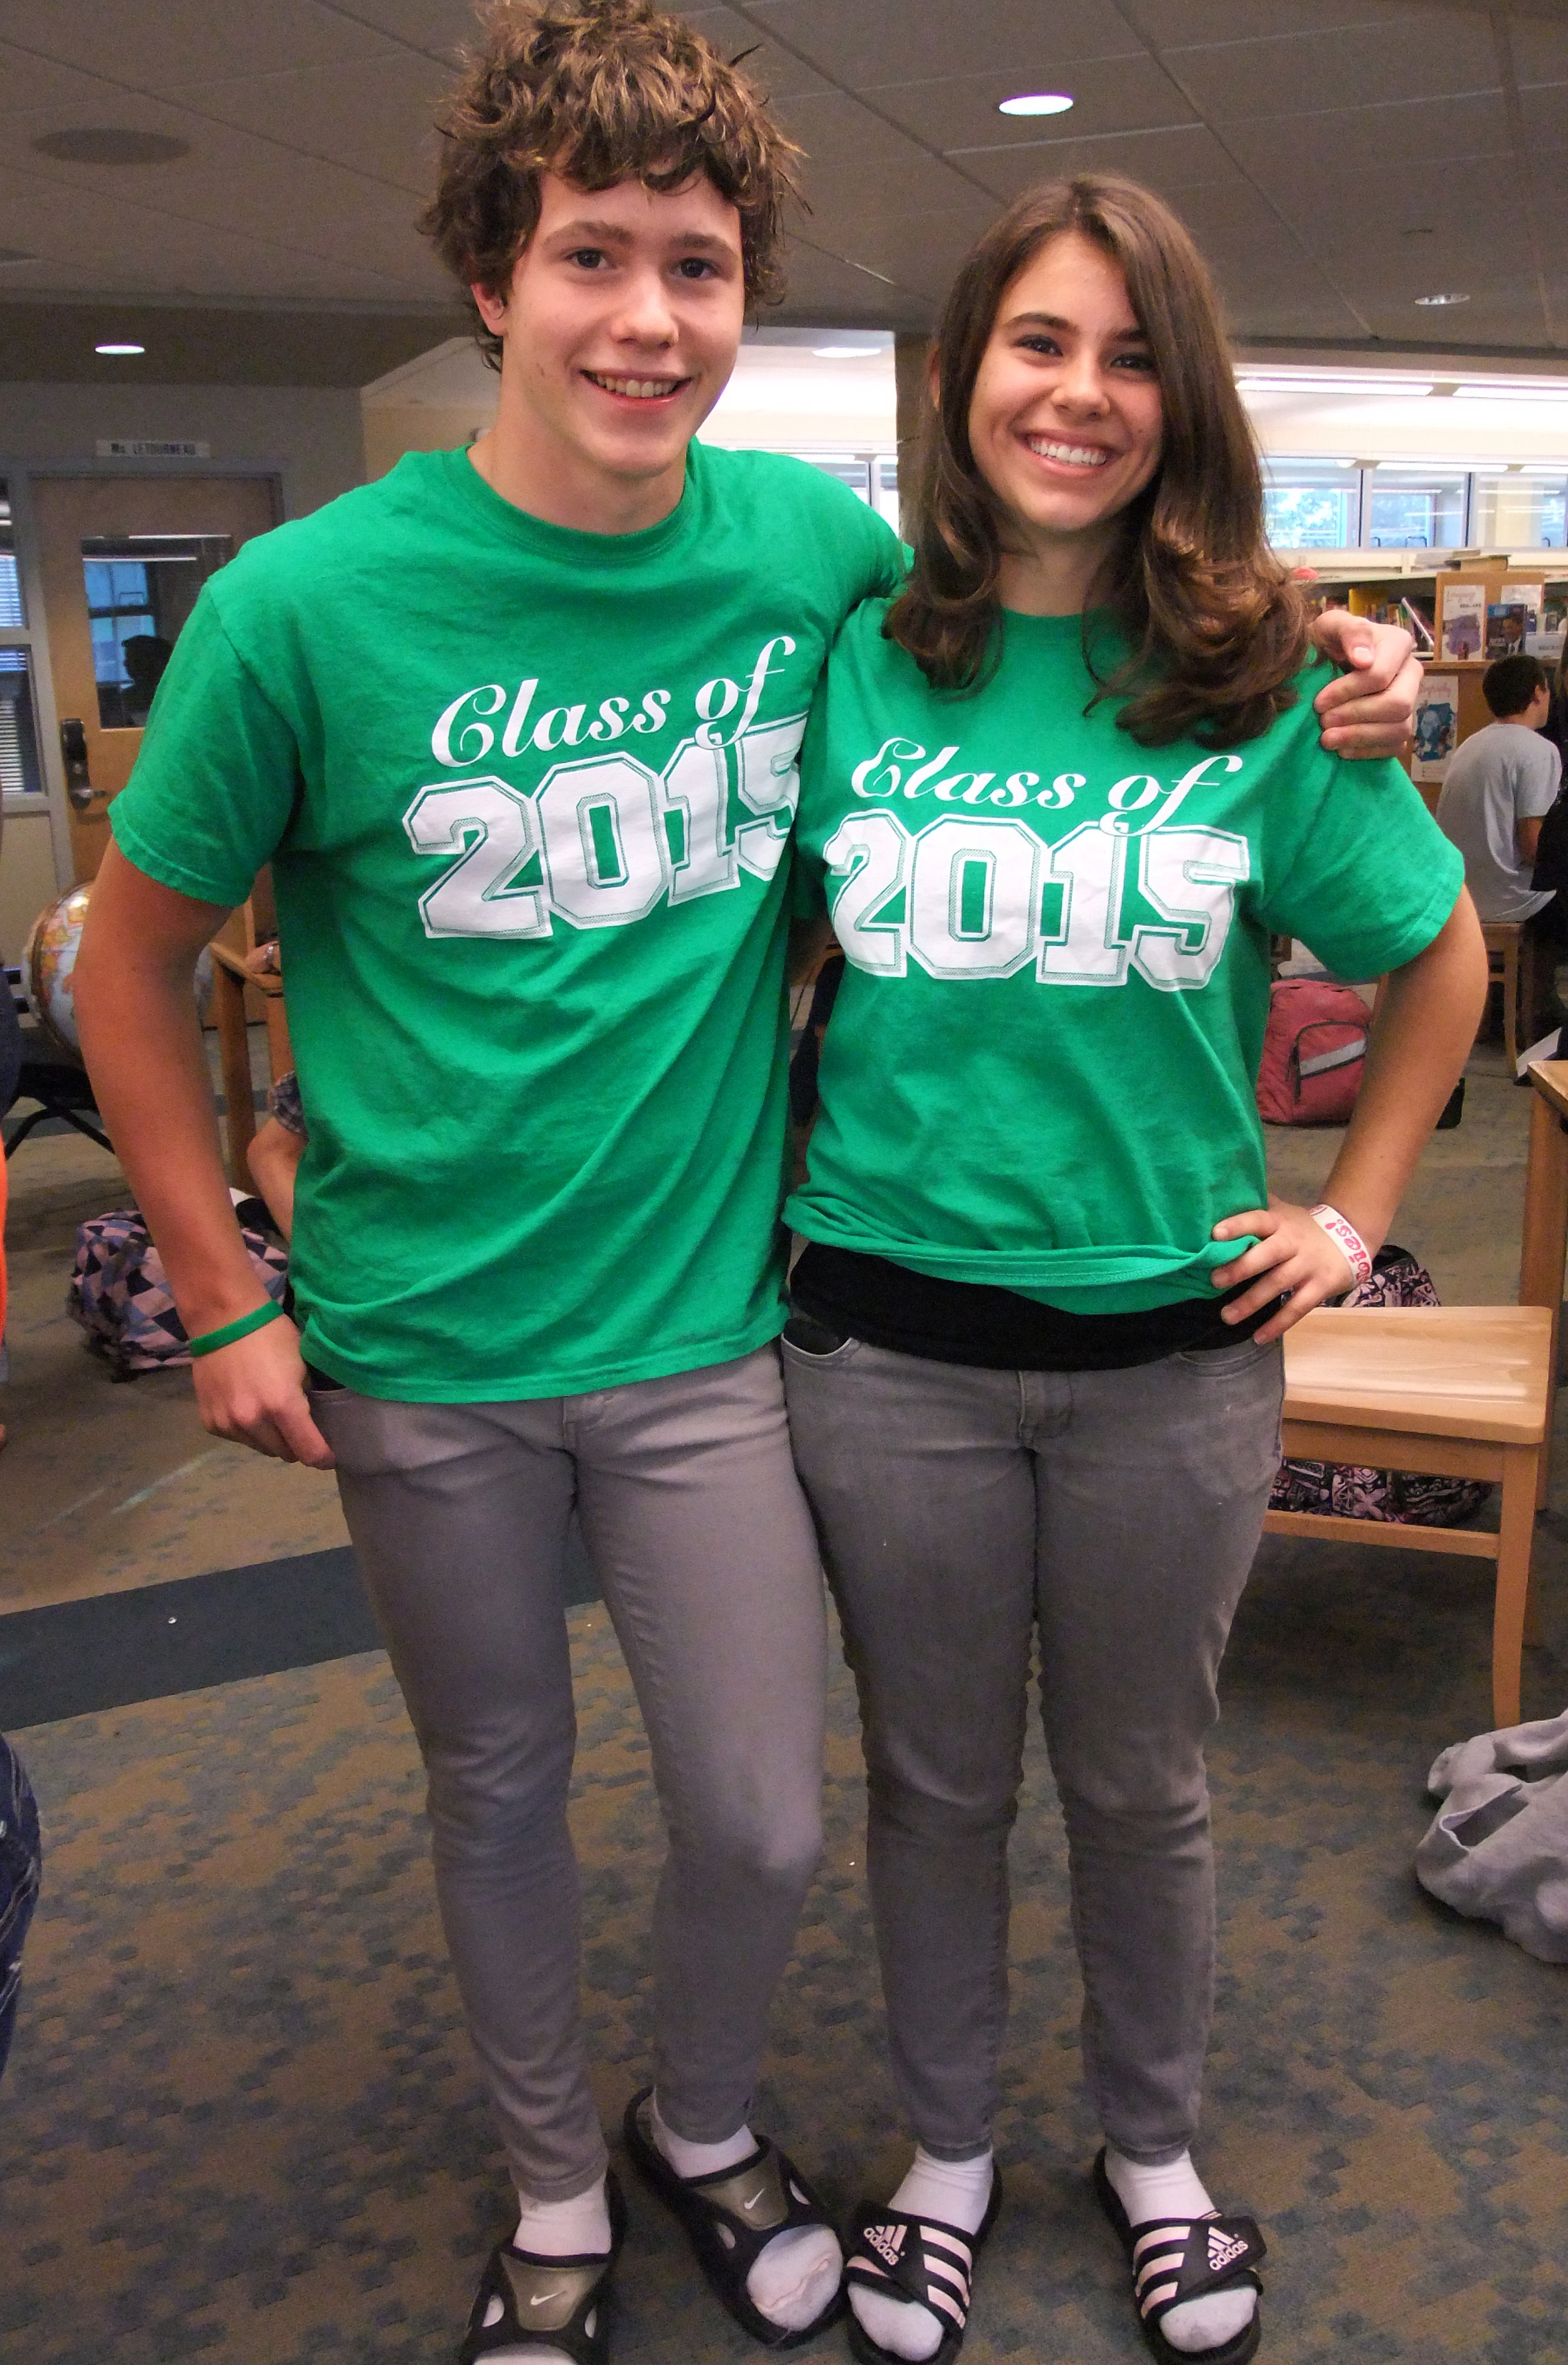 Twin Day Spirit Week Ideas. Ideas For Twins Day at School images